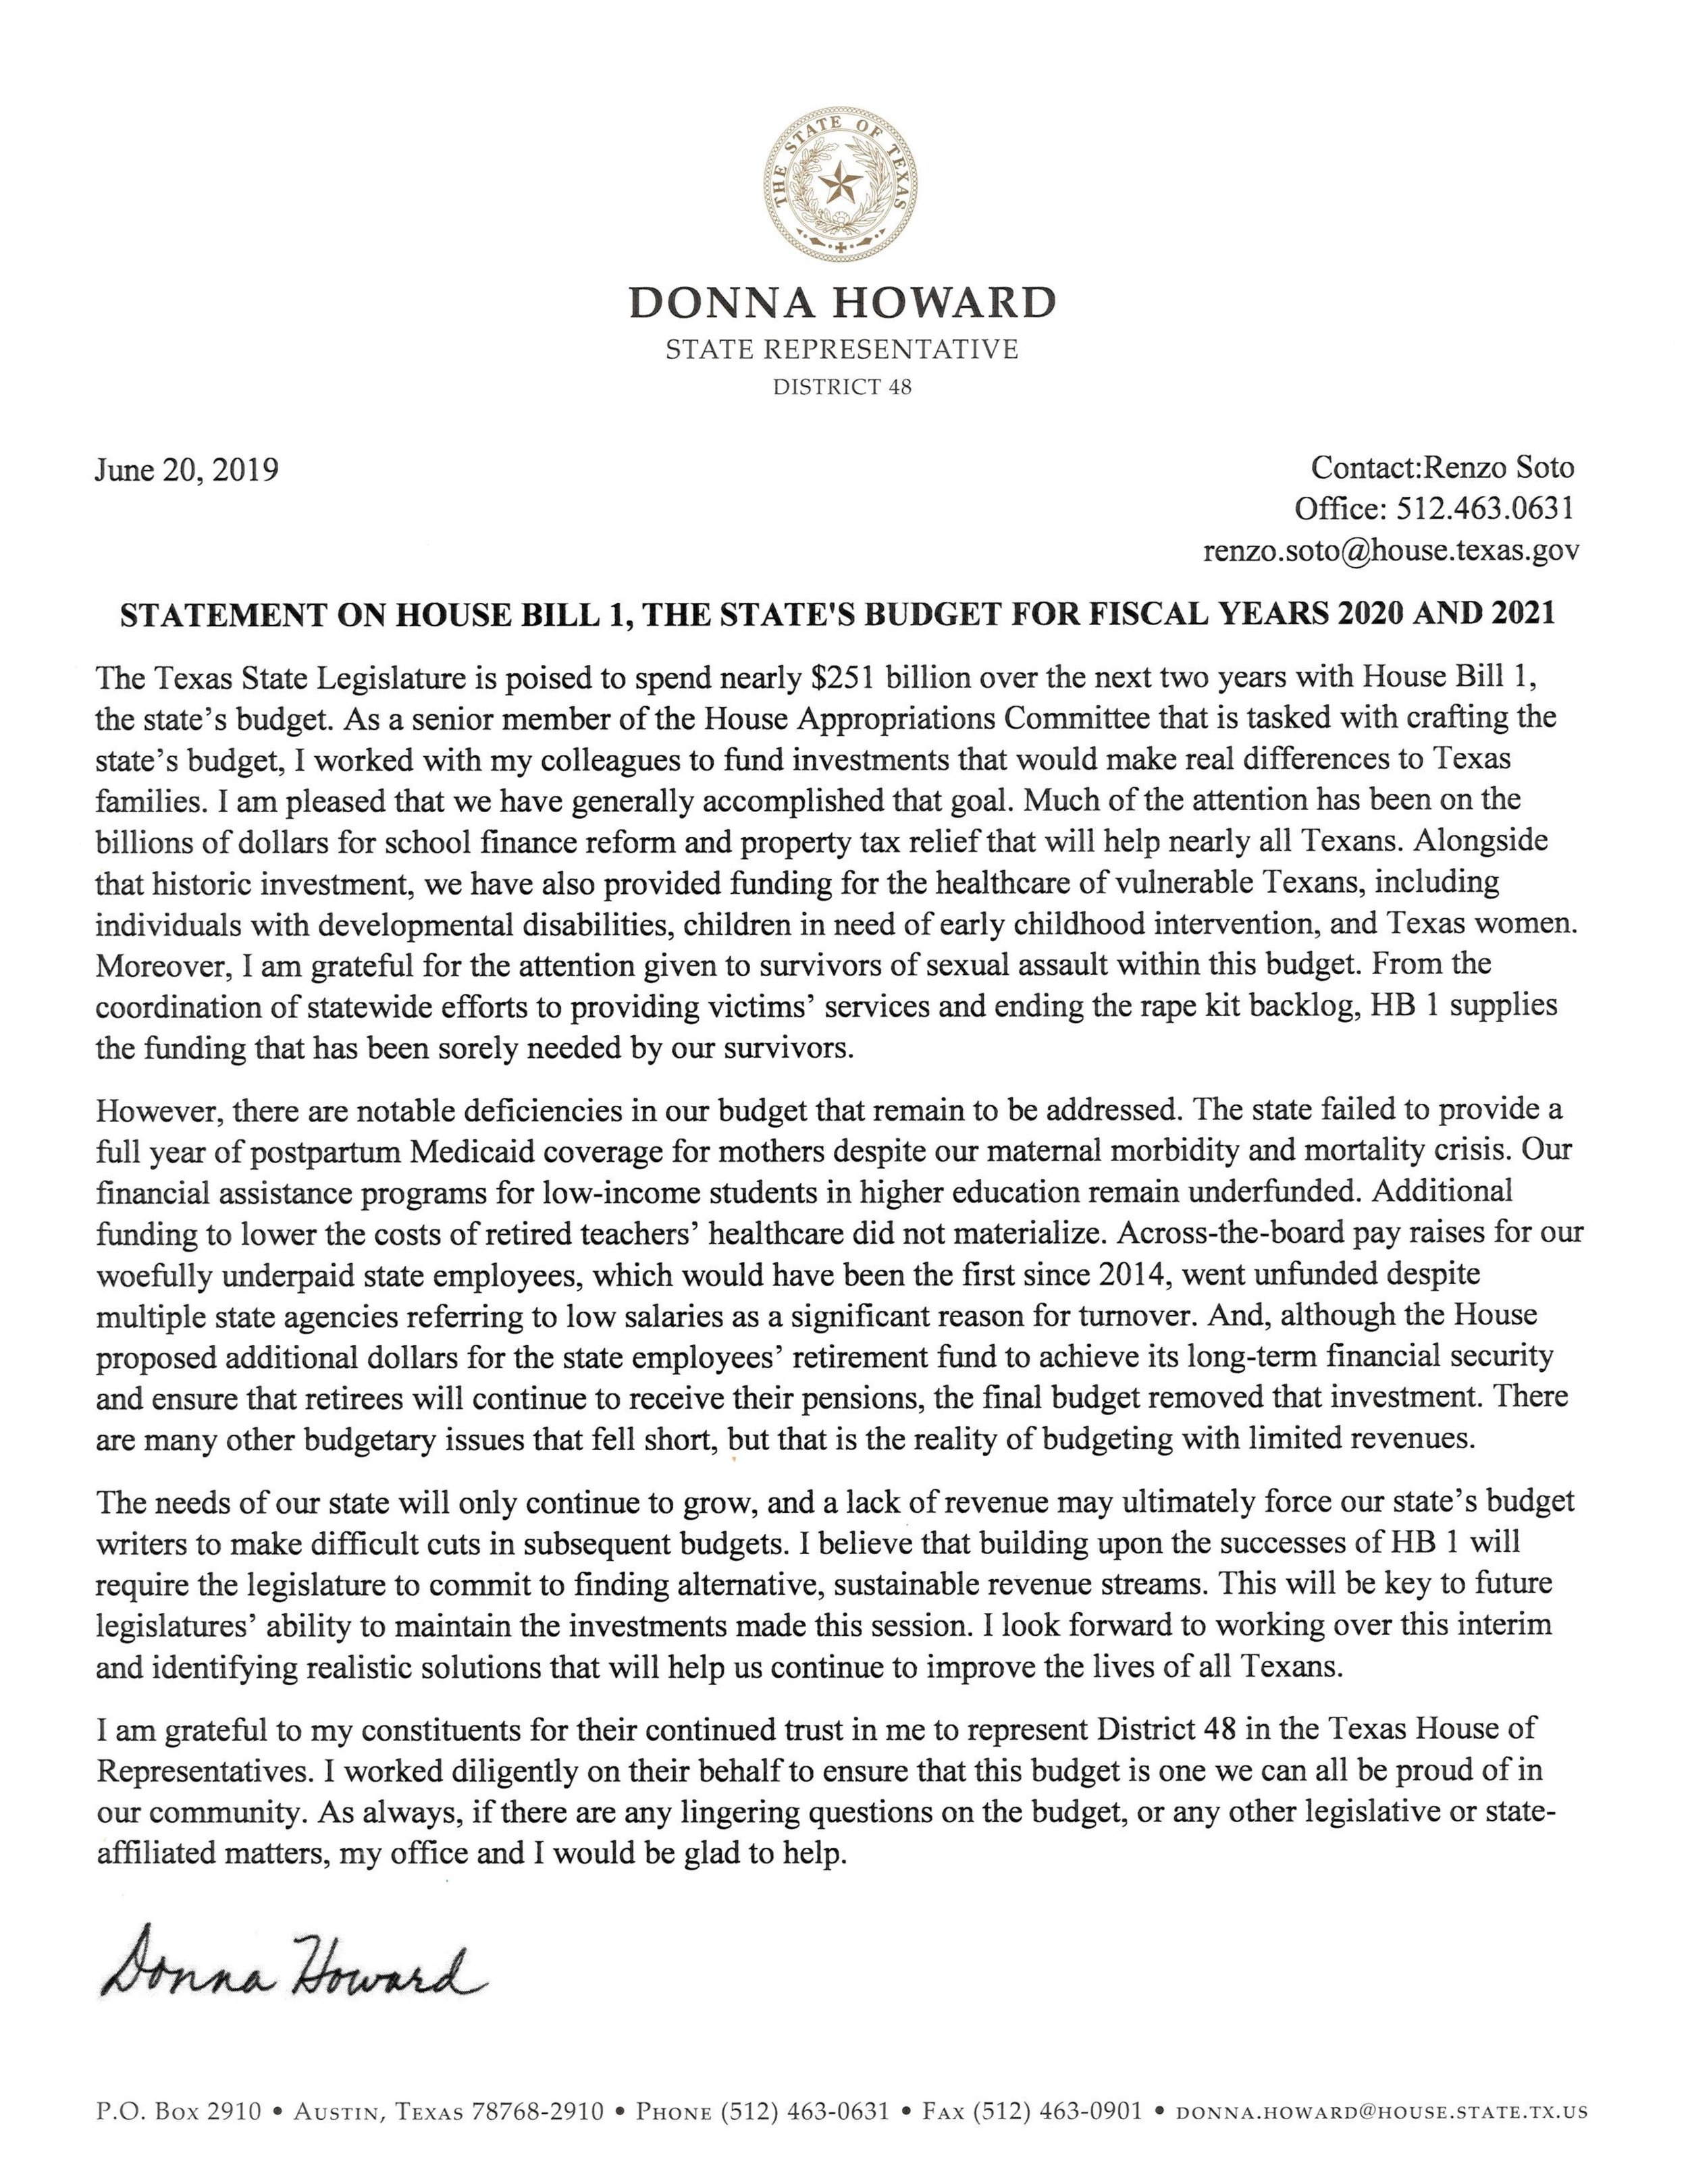 Howard Statement on HB 1.jpg.jpg